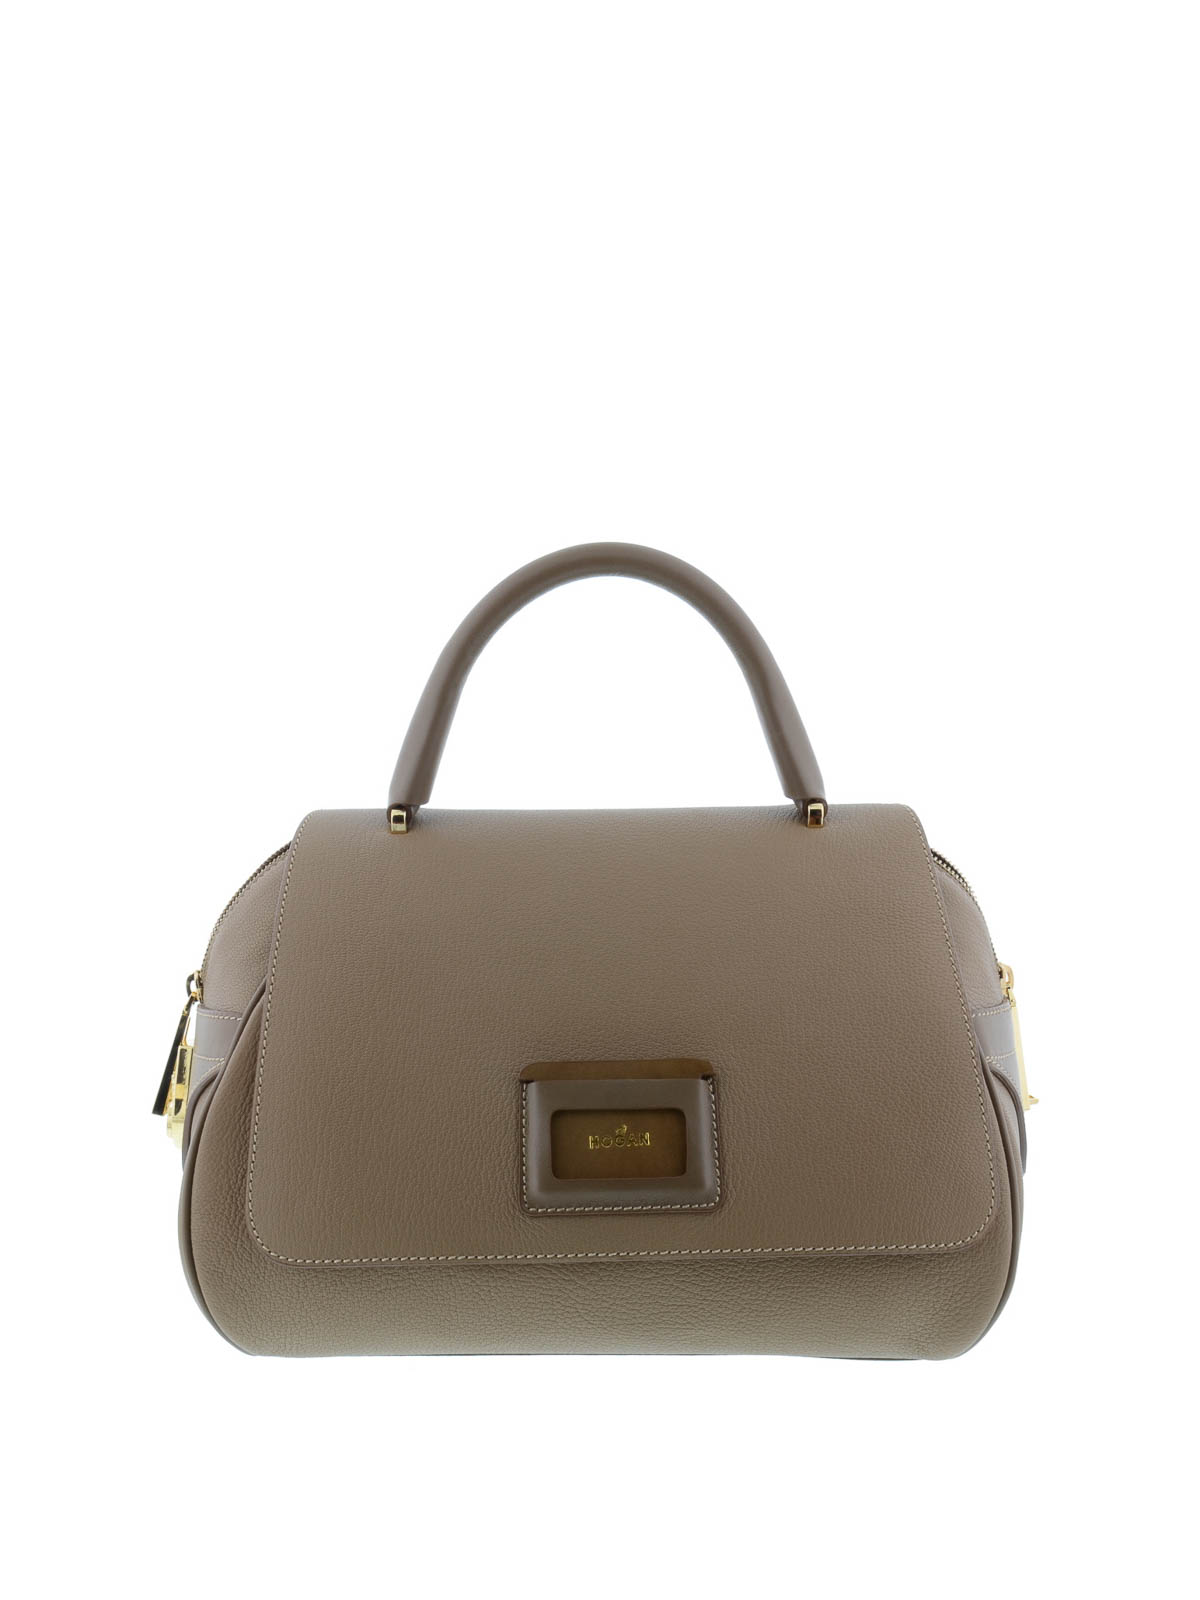 leather logo tote by hogan totes bags ikrix